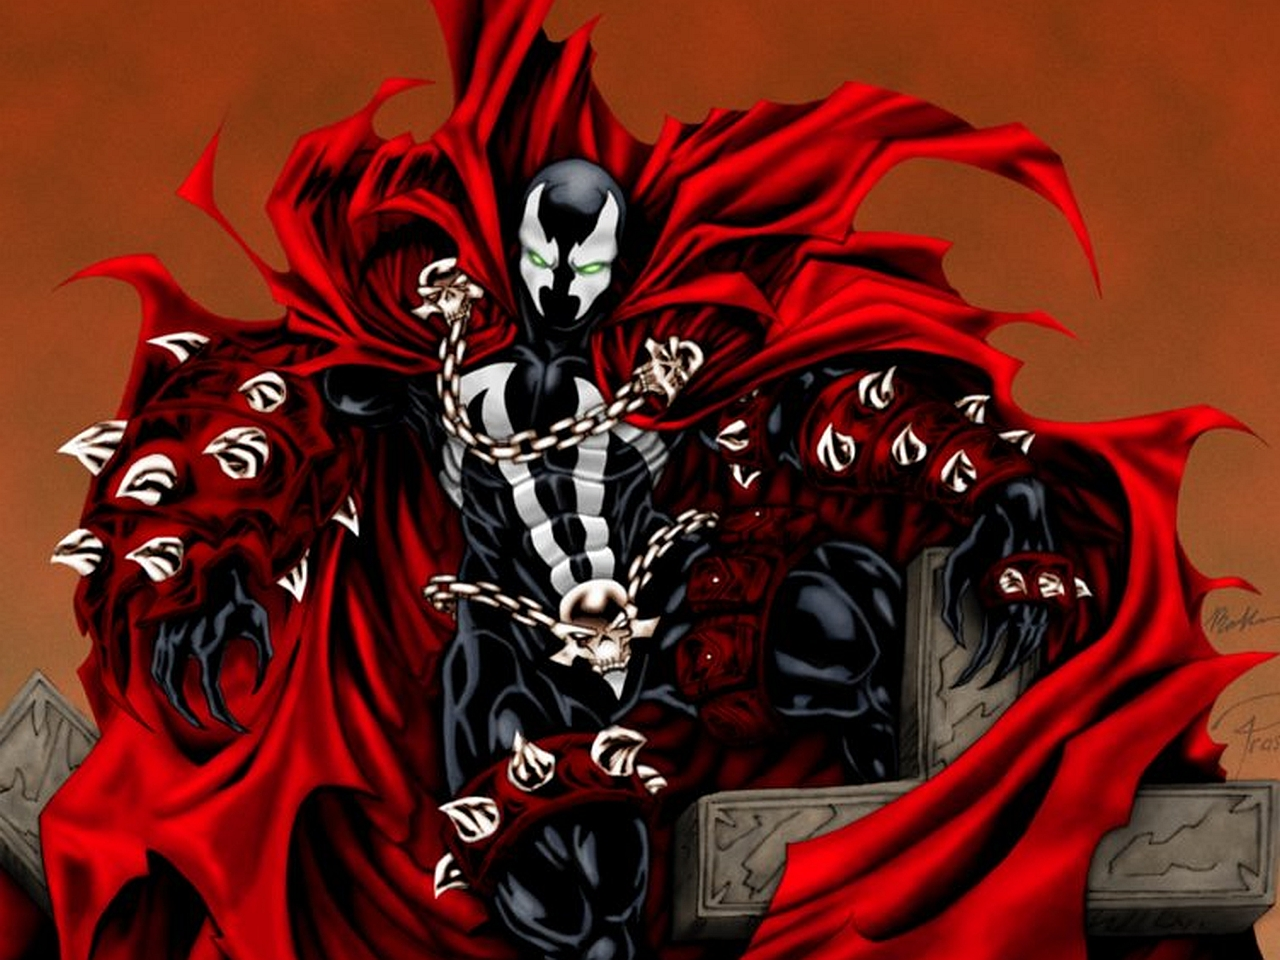 Spawn Computer Wallpapers, Desktop Backgrounds | 1280x960 | ID:443088